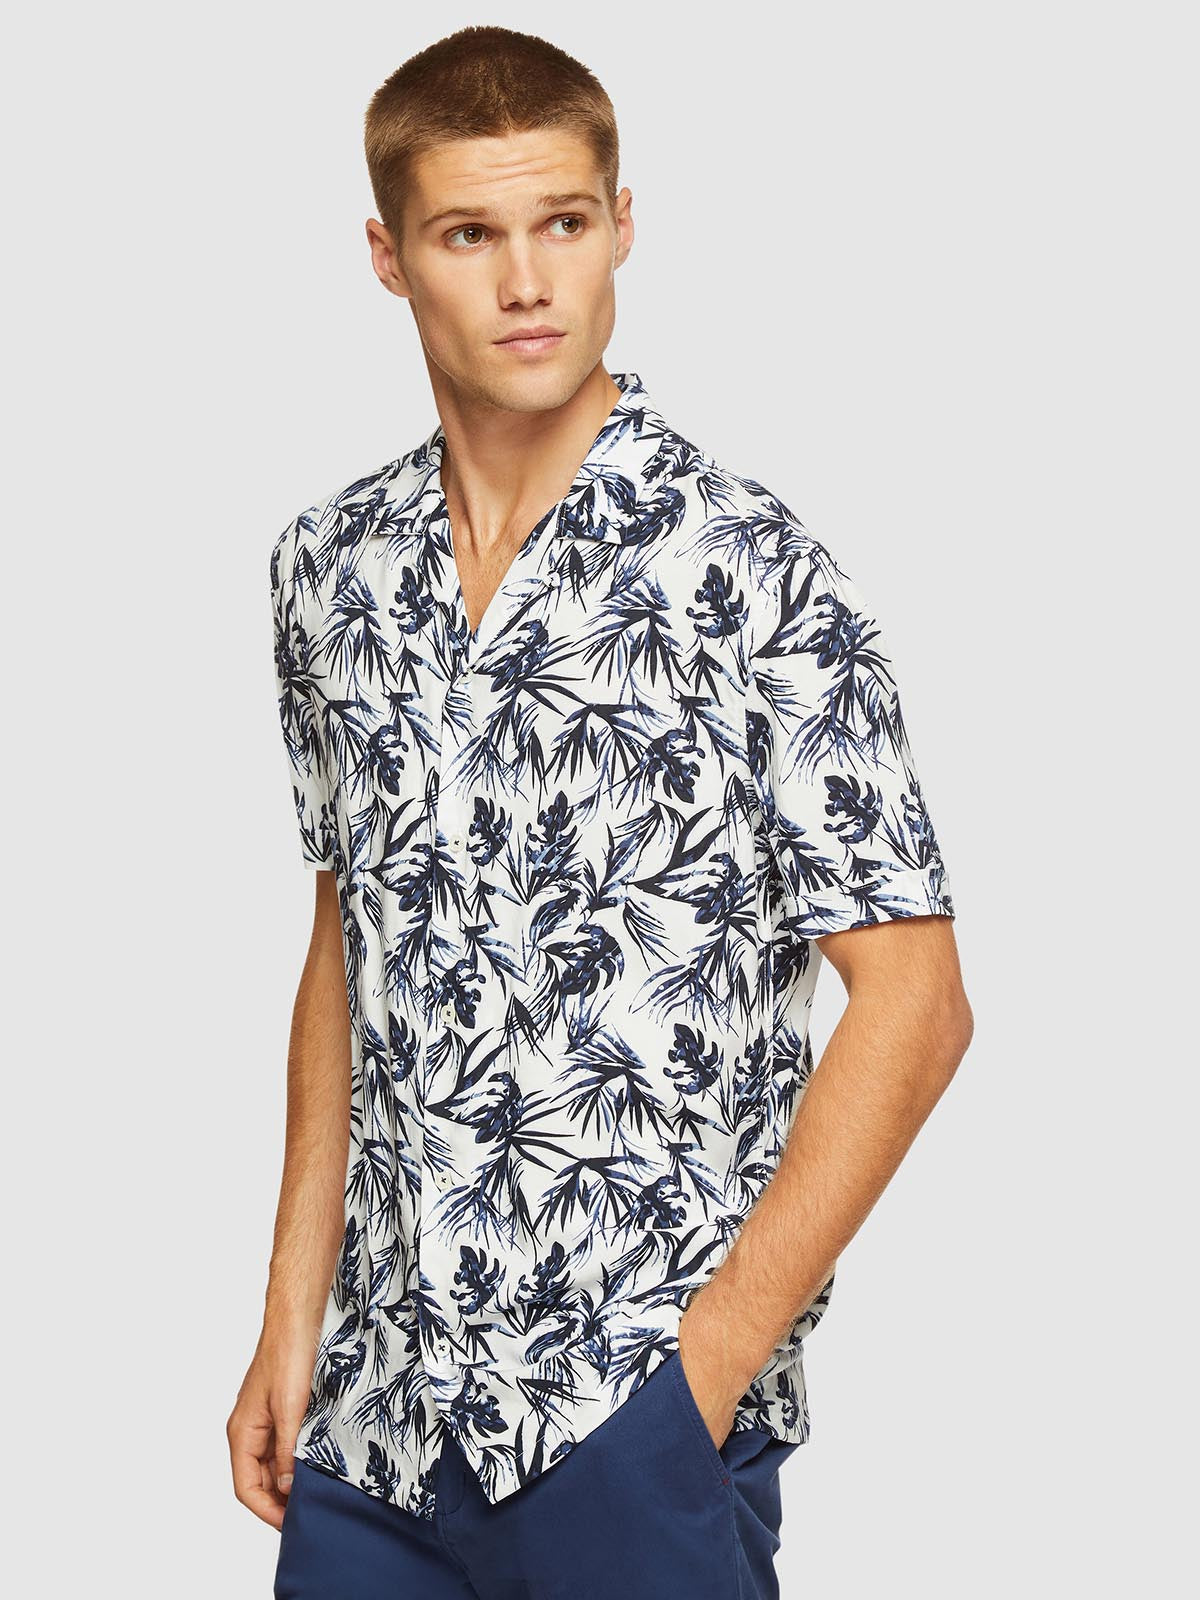 PUTNEY PRINTED S/S SHIRT WHITE/NAVY